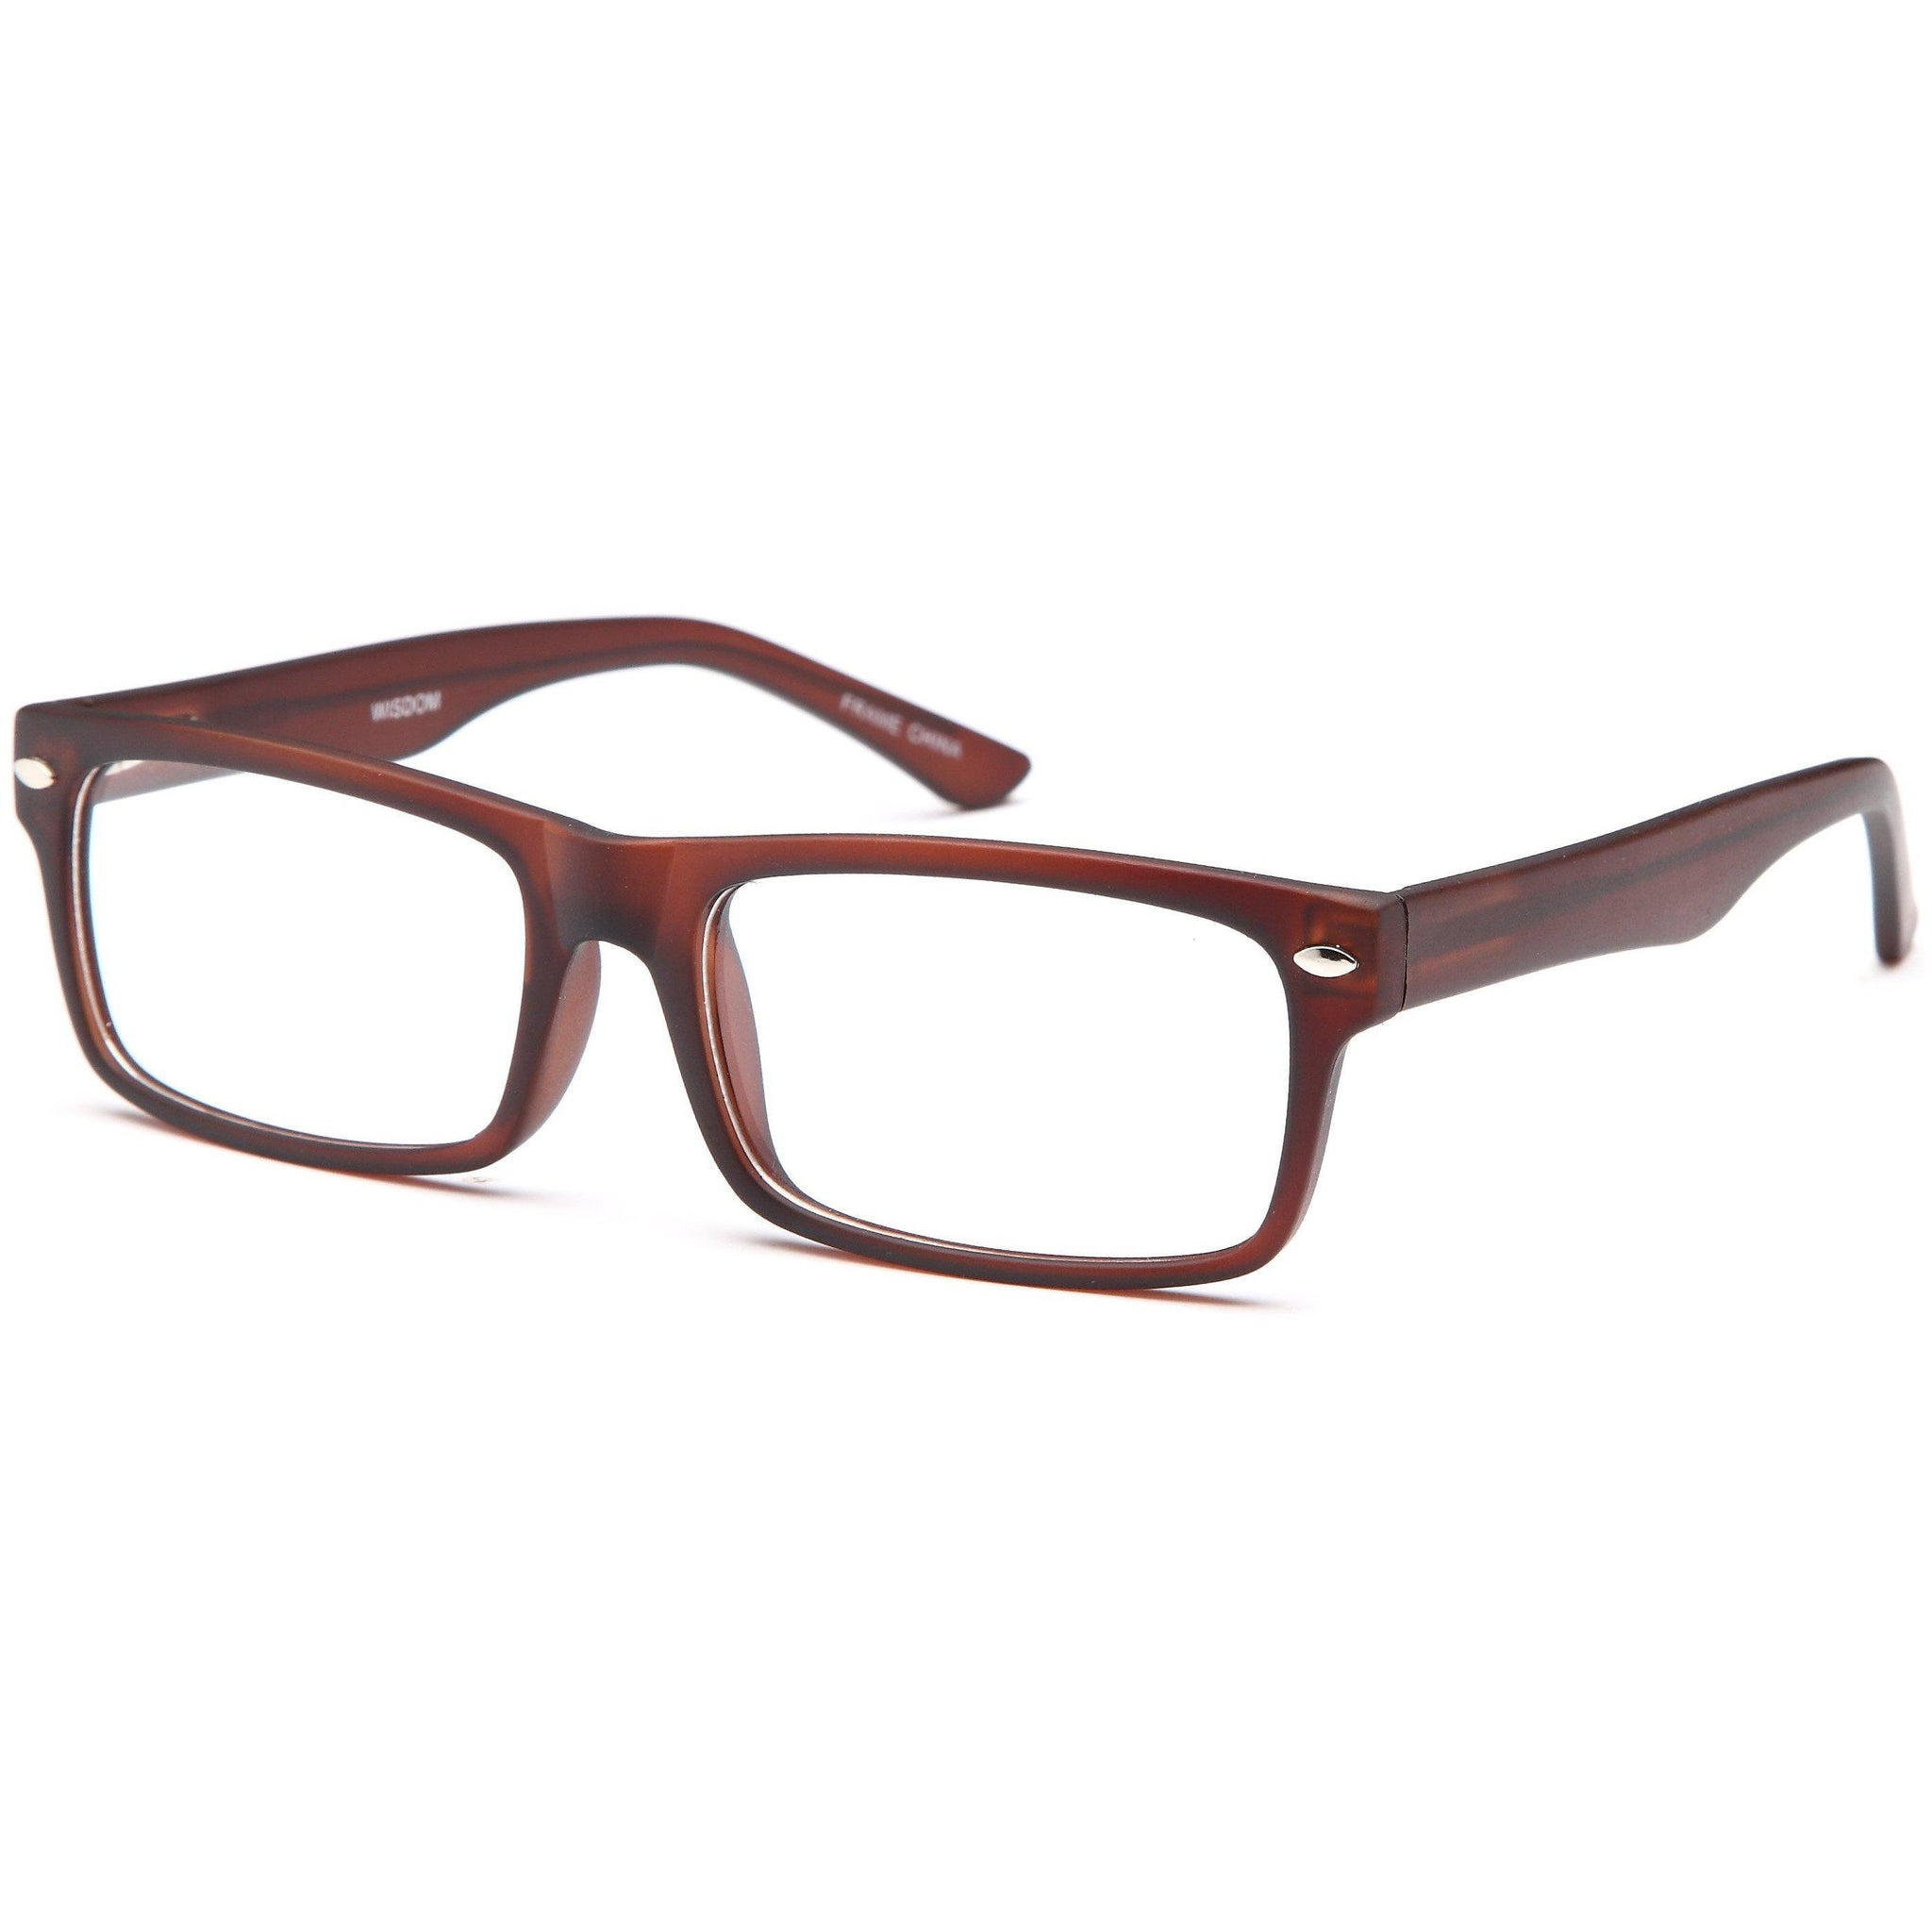 GEN Y Prescription Glasses WISDOM Eyeglasses Frame